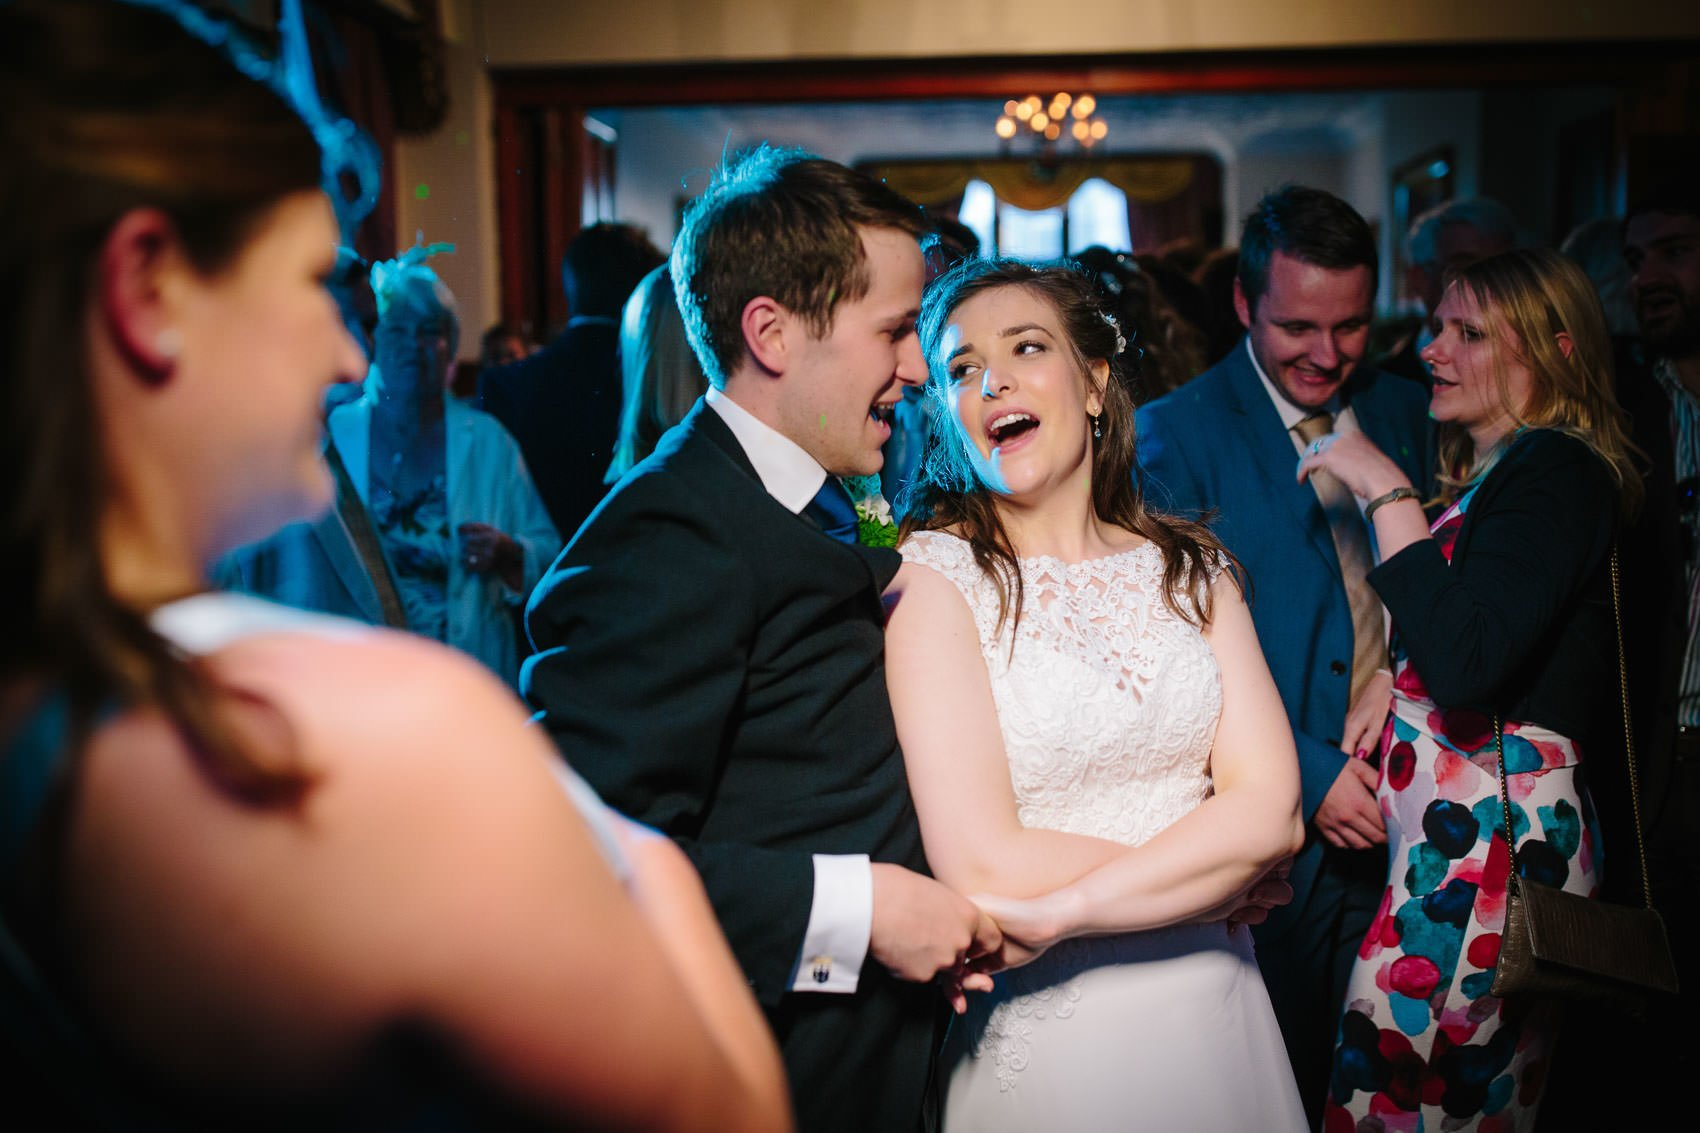 Stanhill Court Wedding Photography - Lizzie and Sam 57